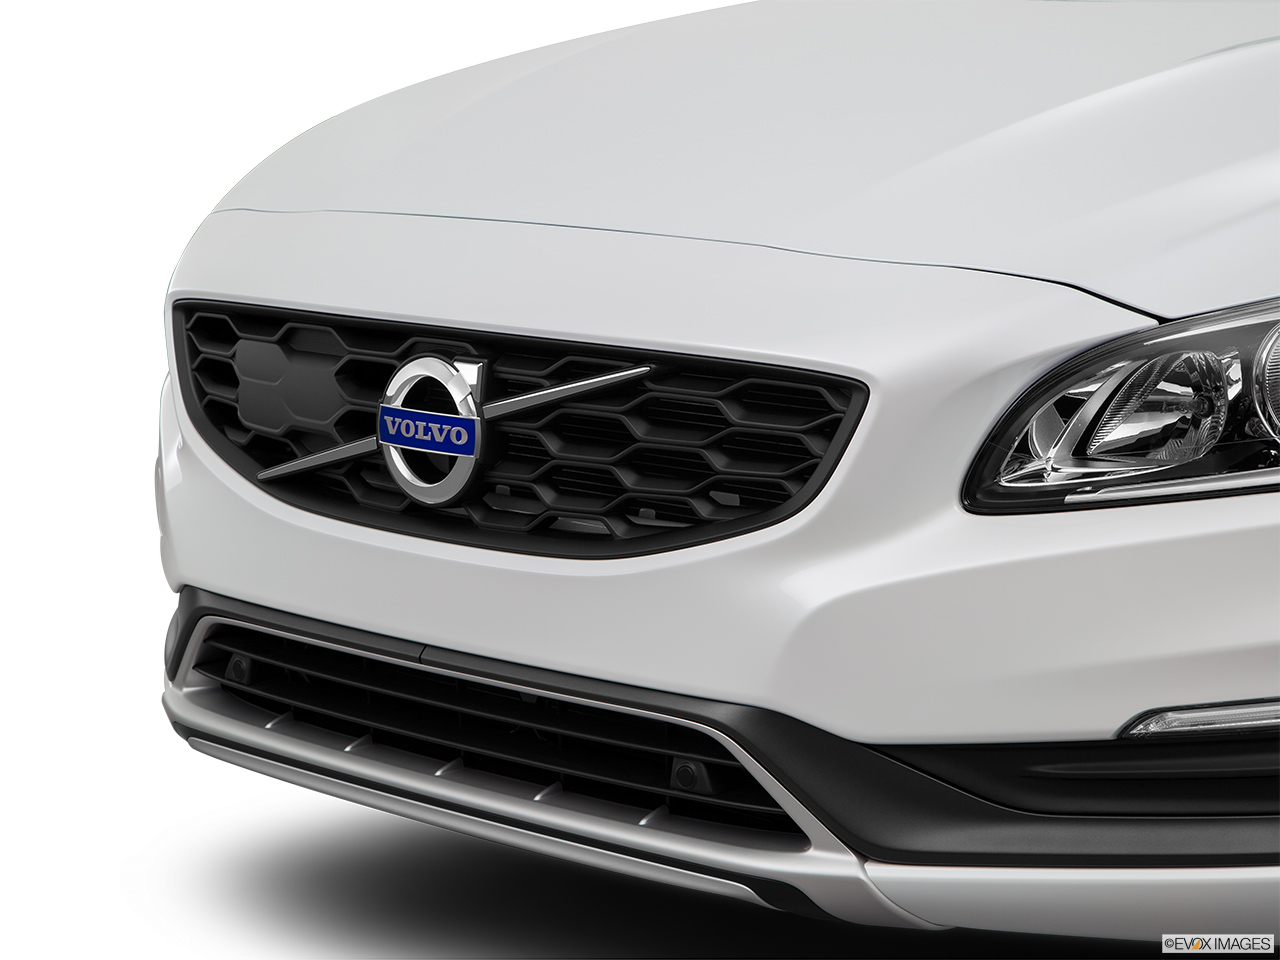 2015 Volvo V60 Cross Country T5 AWD Close up of Grill.